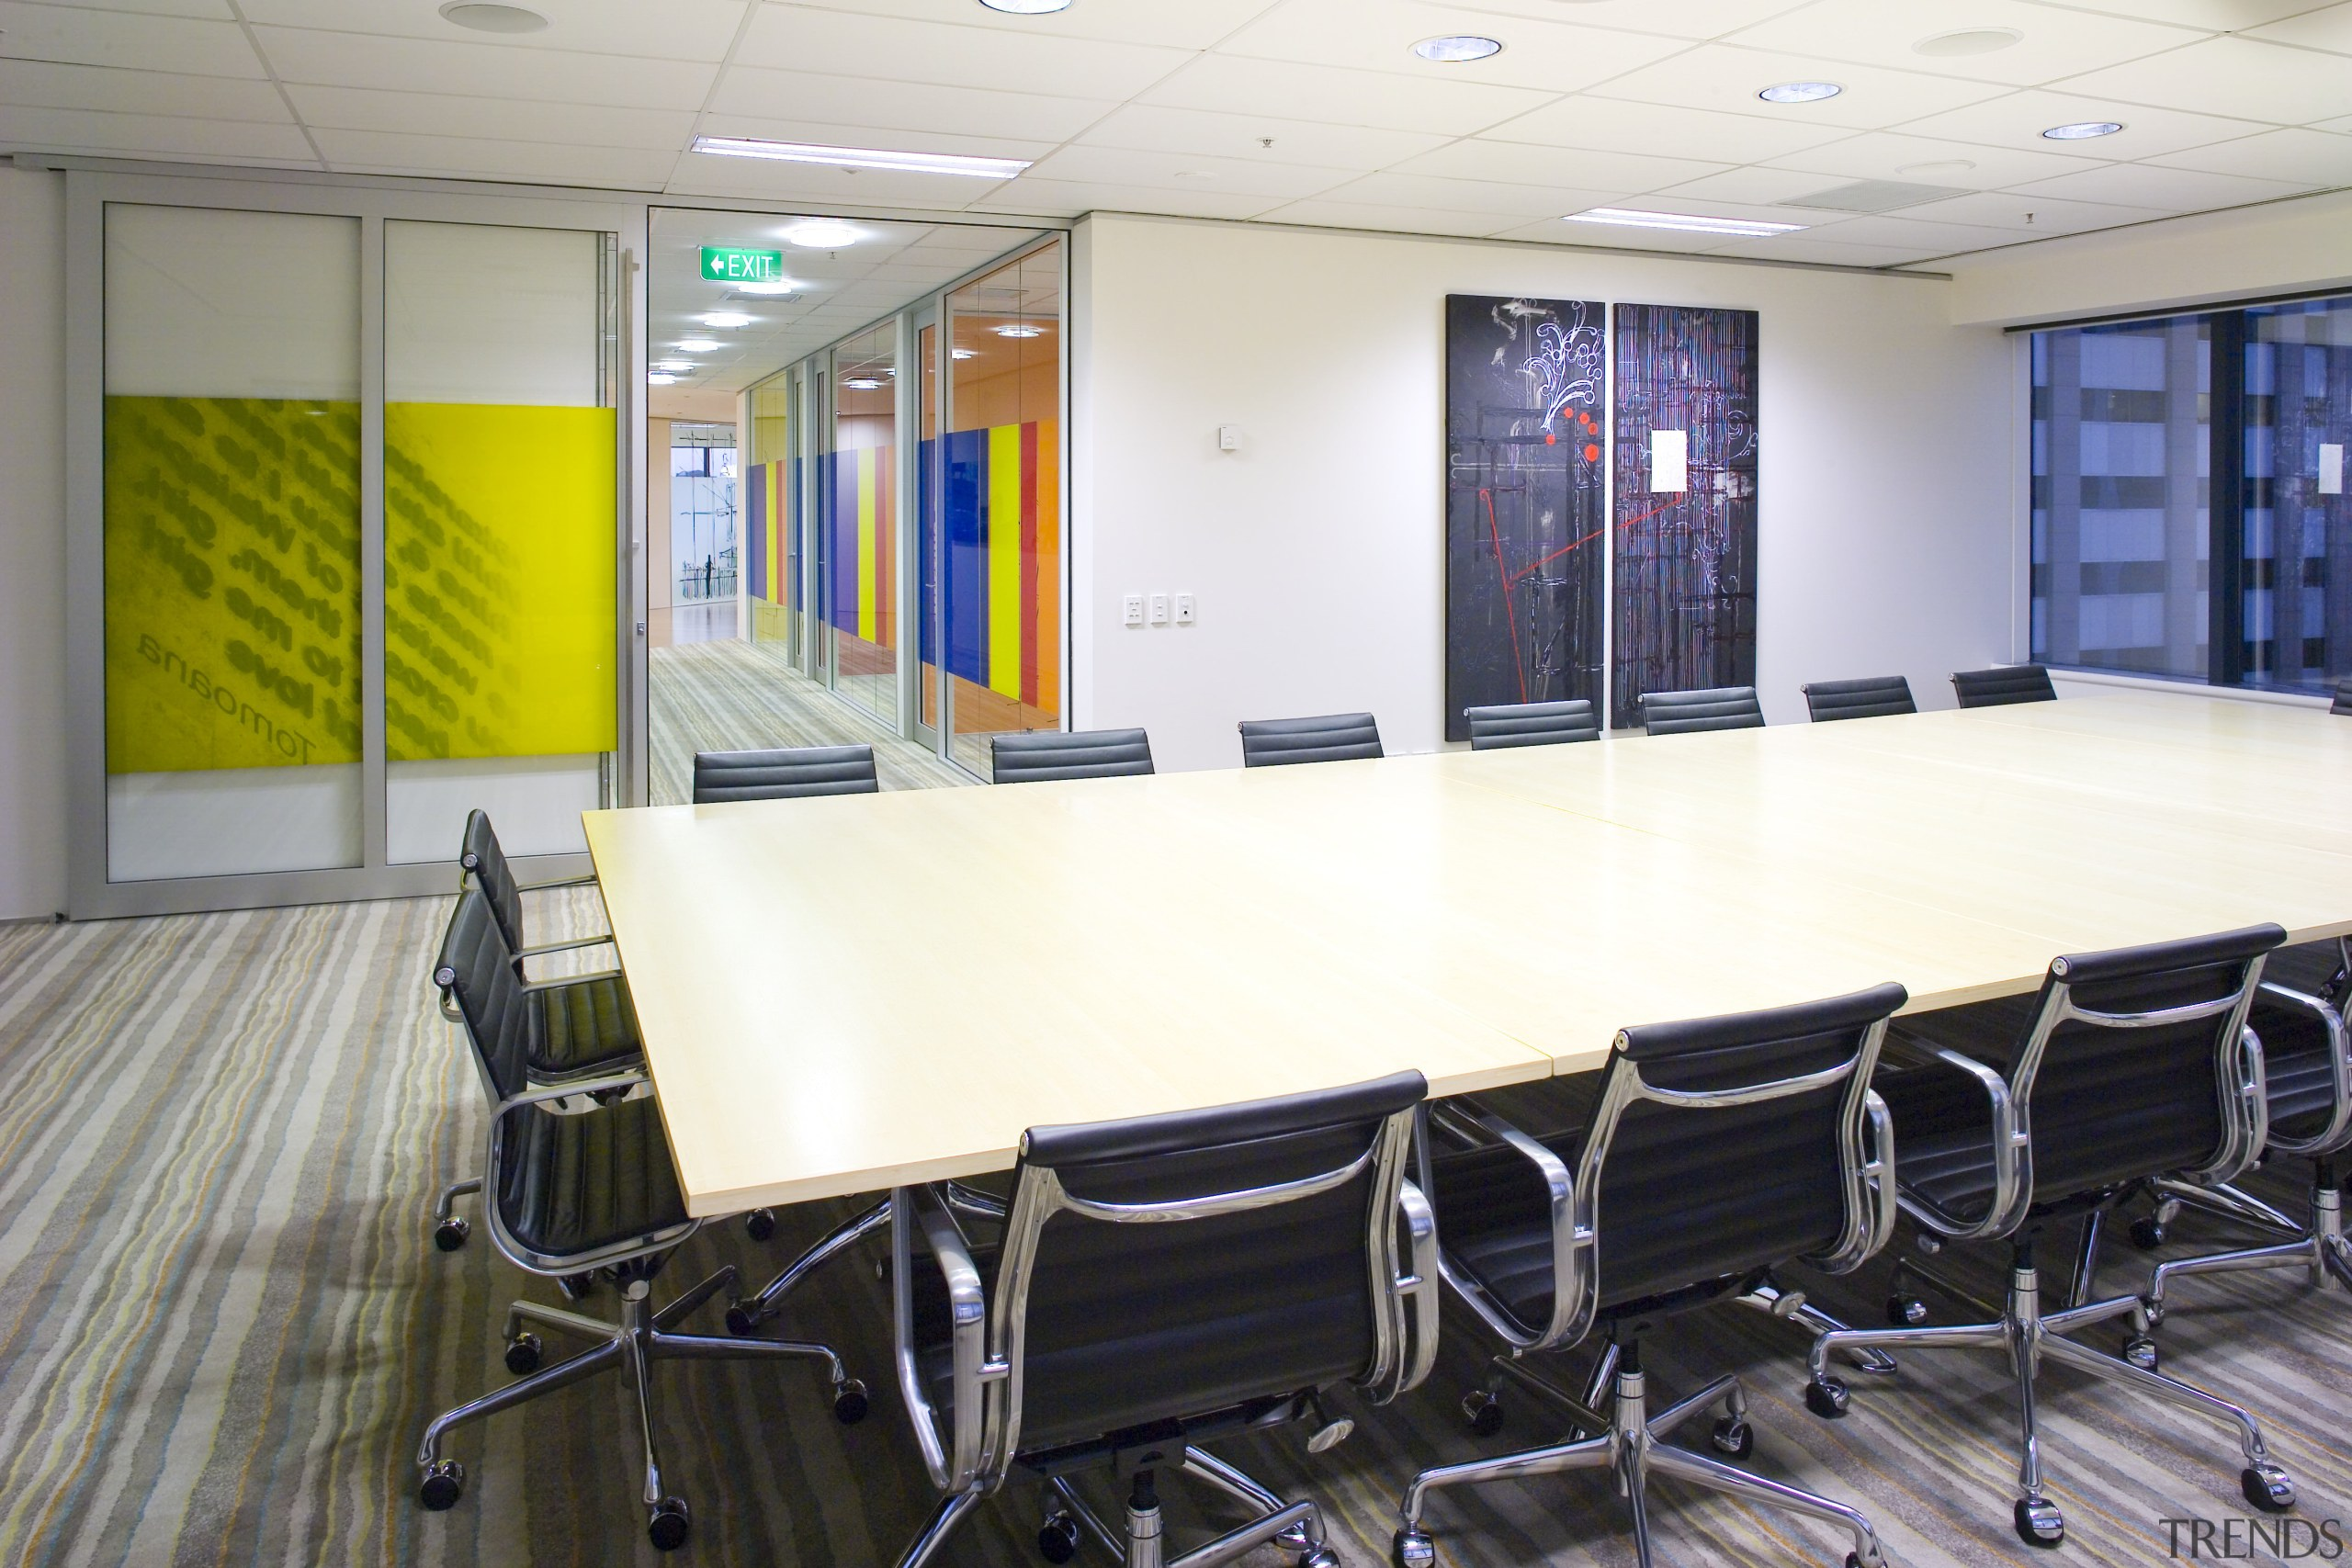 View of the Kiwi Income Property Managment offices classroom, conference hall, furniture, institution, interior design, office, table, white